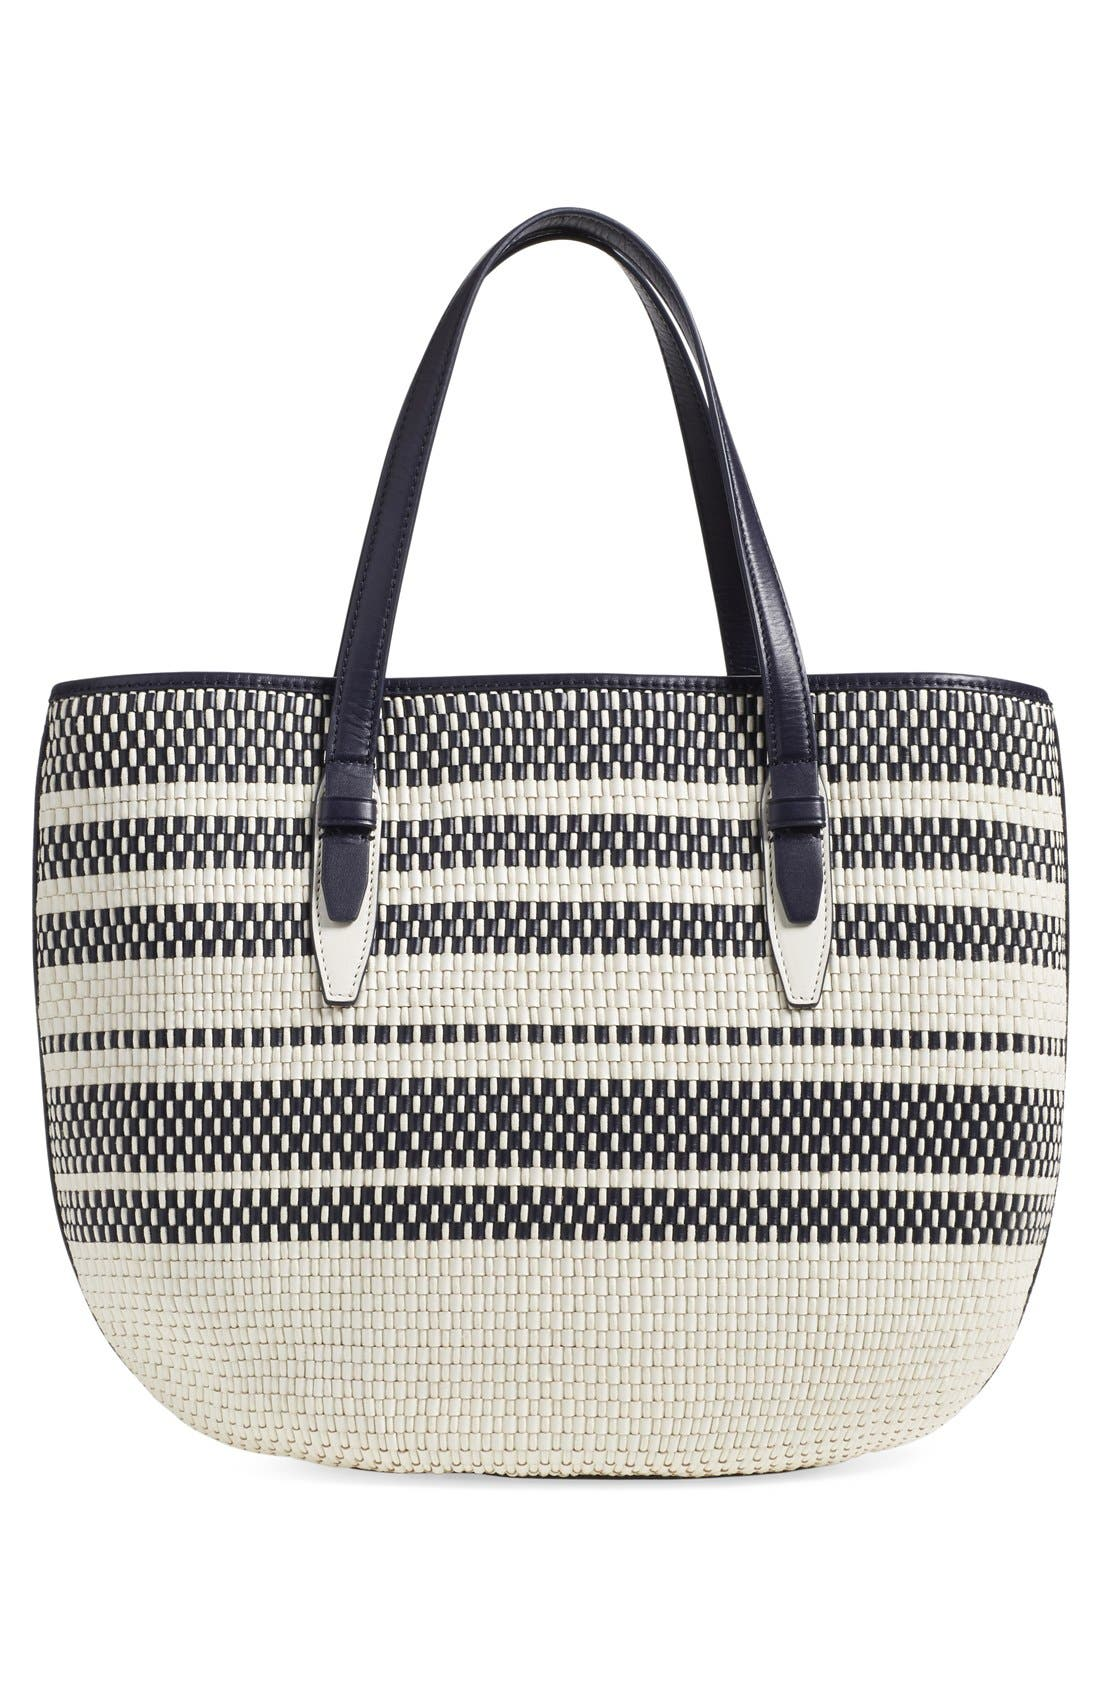 Alternate Image 3  - Tory Burch Woven Leather Tote